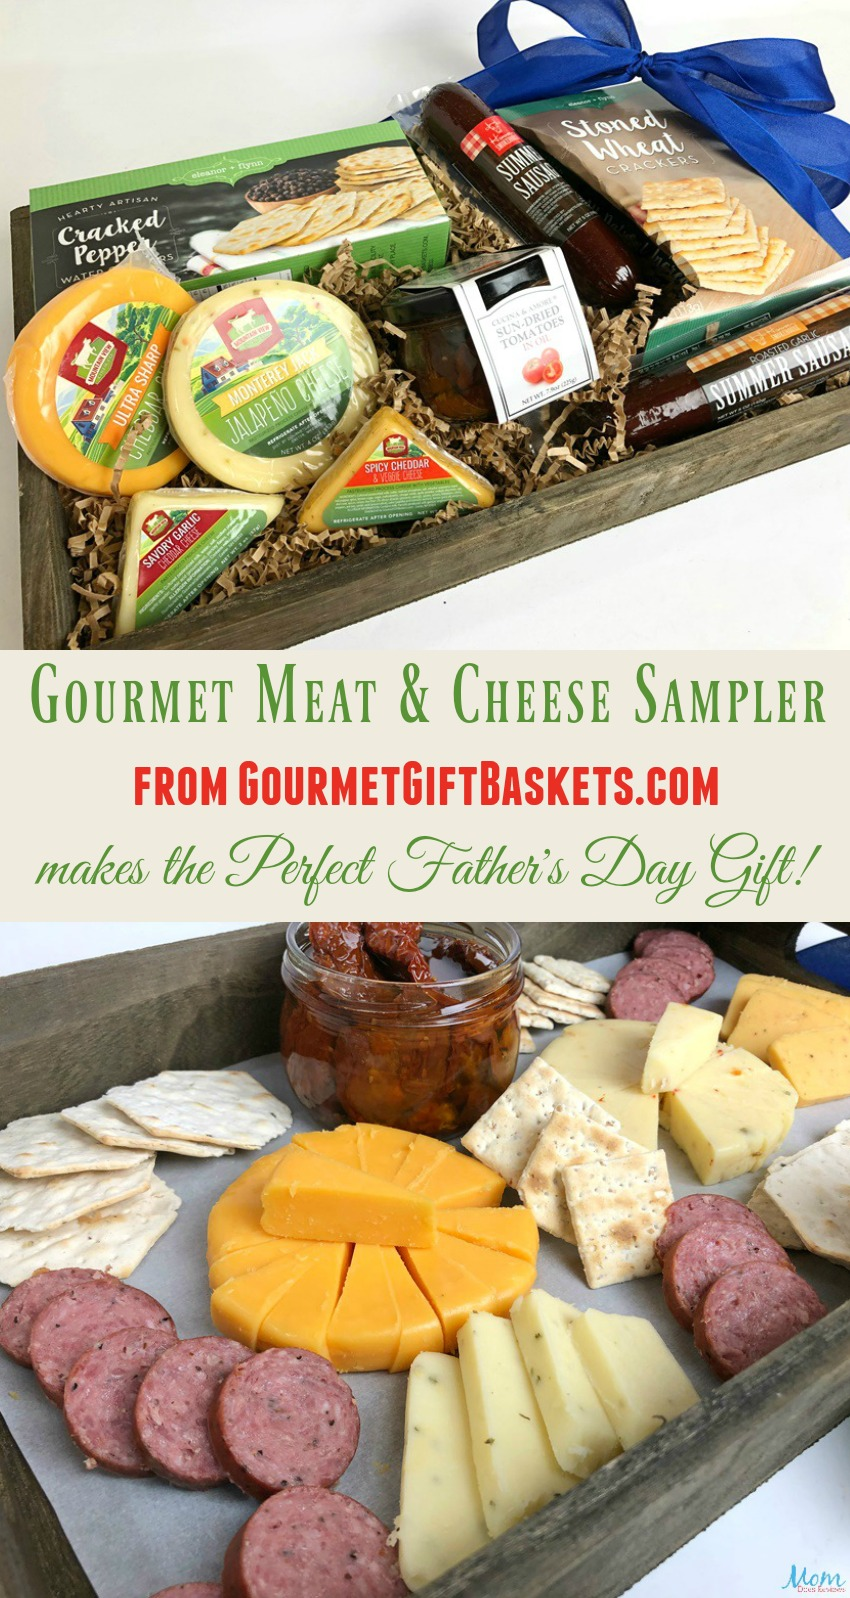 Gourmet Meat & Cheese Sampler from GourmetGiftBaskets.com makes the Perfect Father's Day Gift! #superdadgifts19